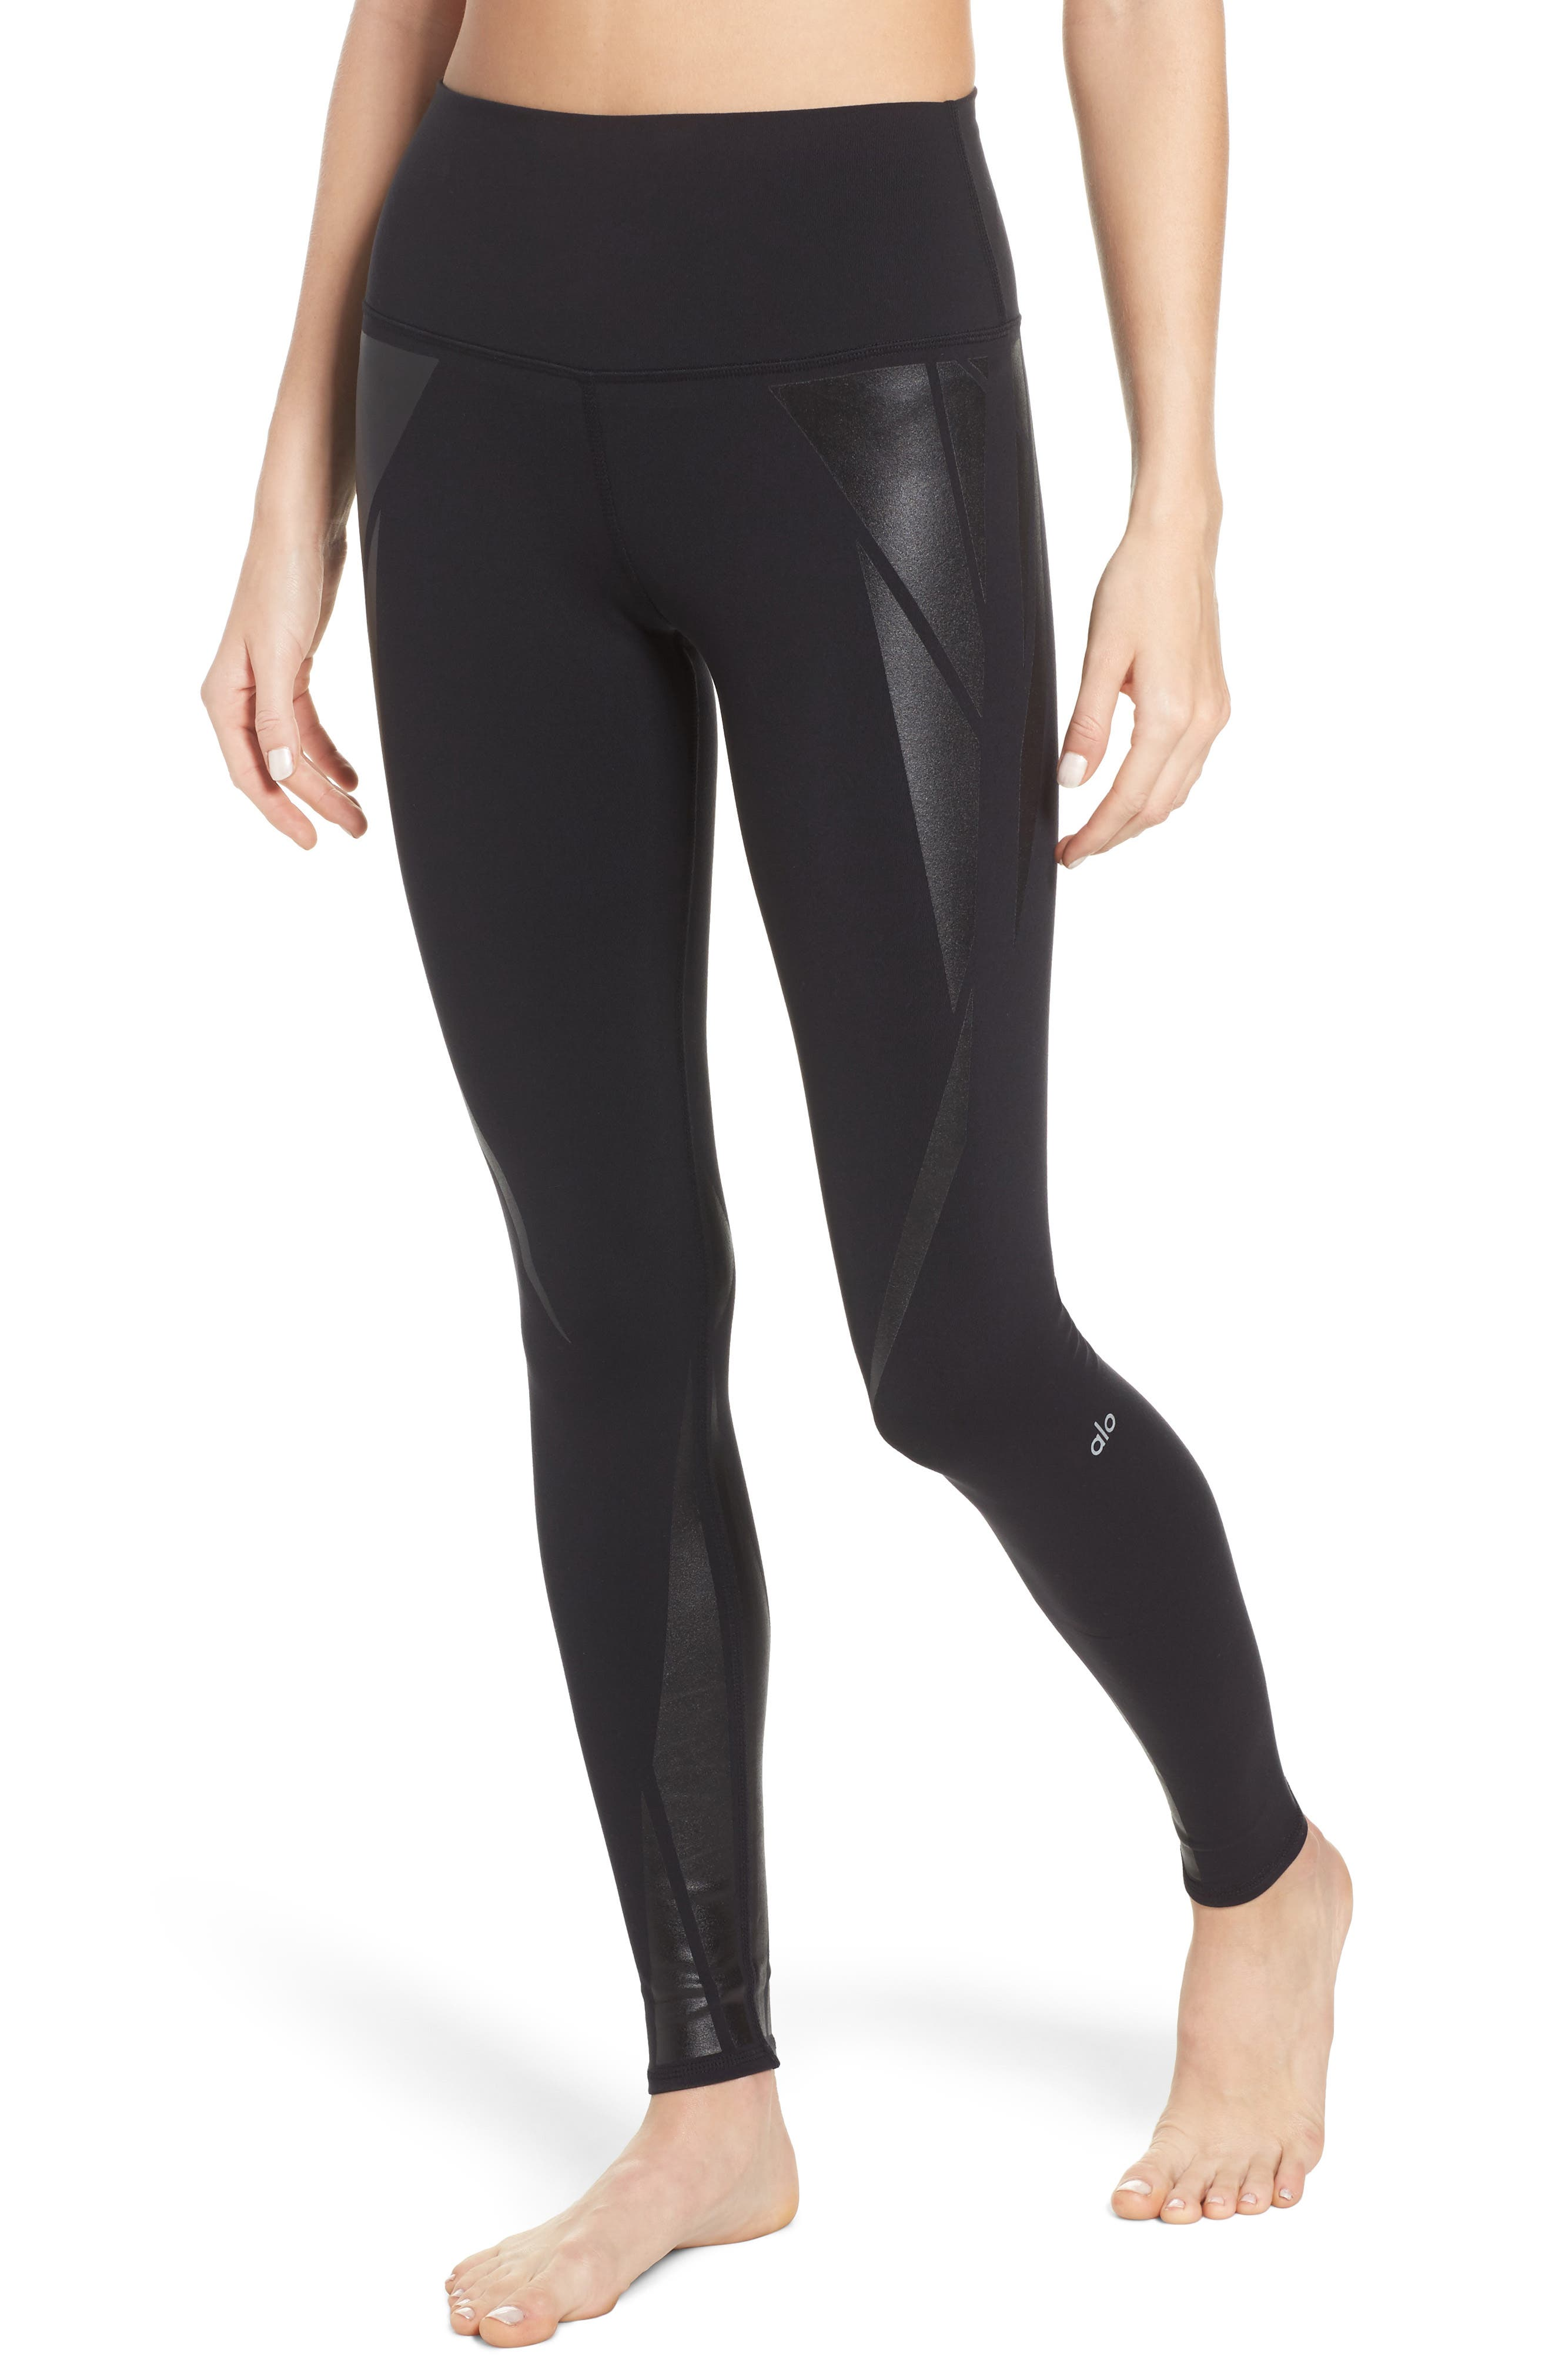 Airbrush High Waist Leggings,                         Main,                         color, 011